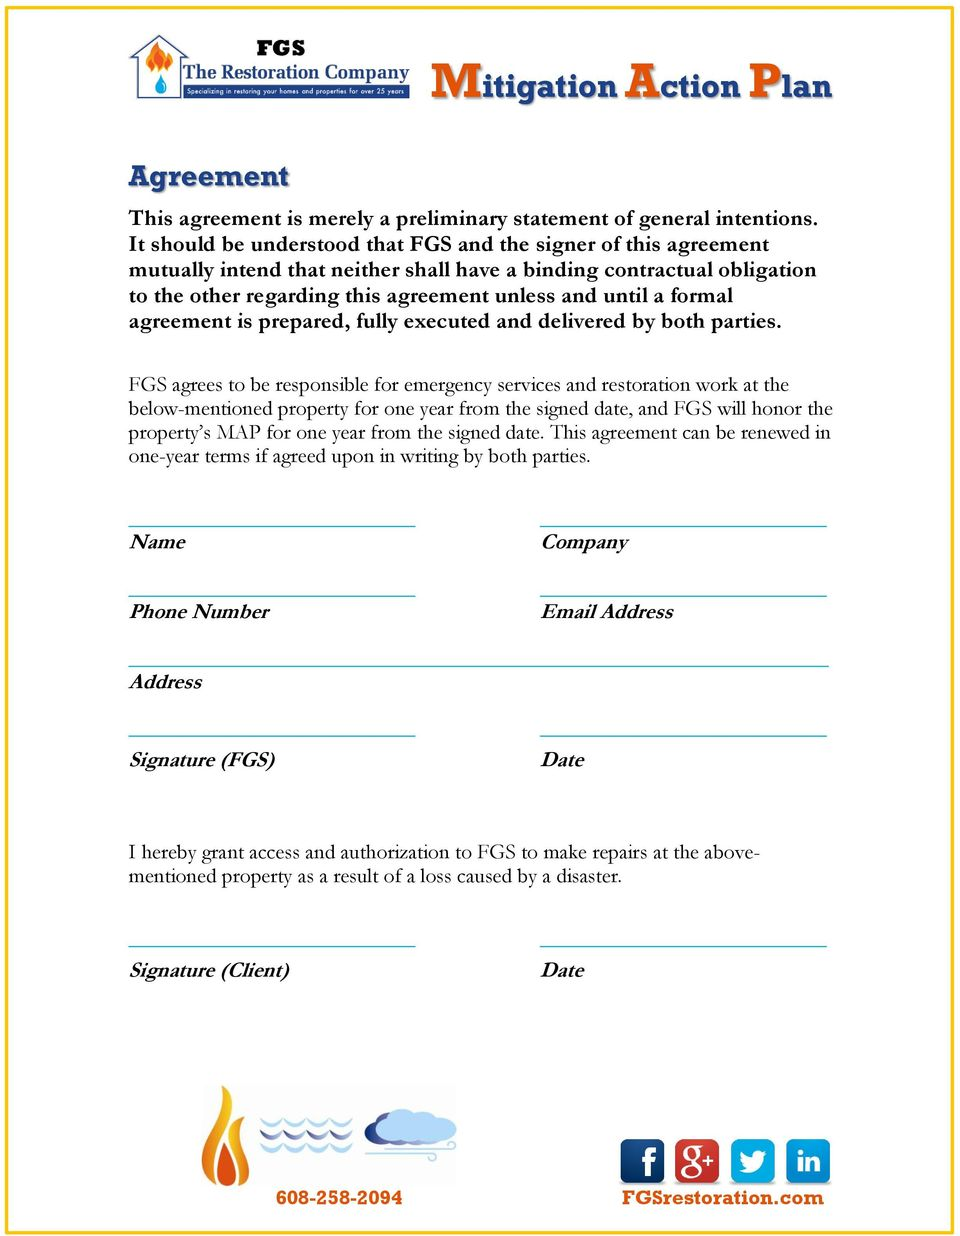 formal agreement is prepared, fully executed and delivered by both parties.